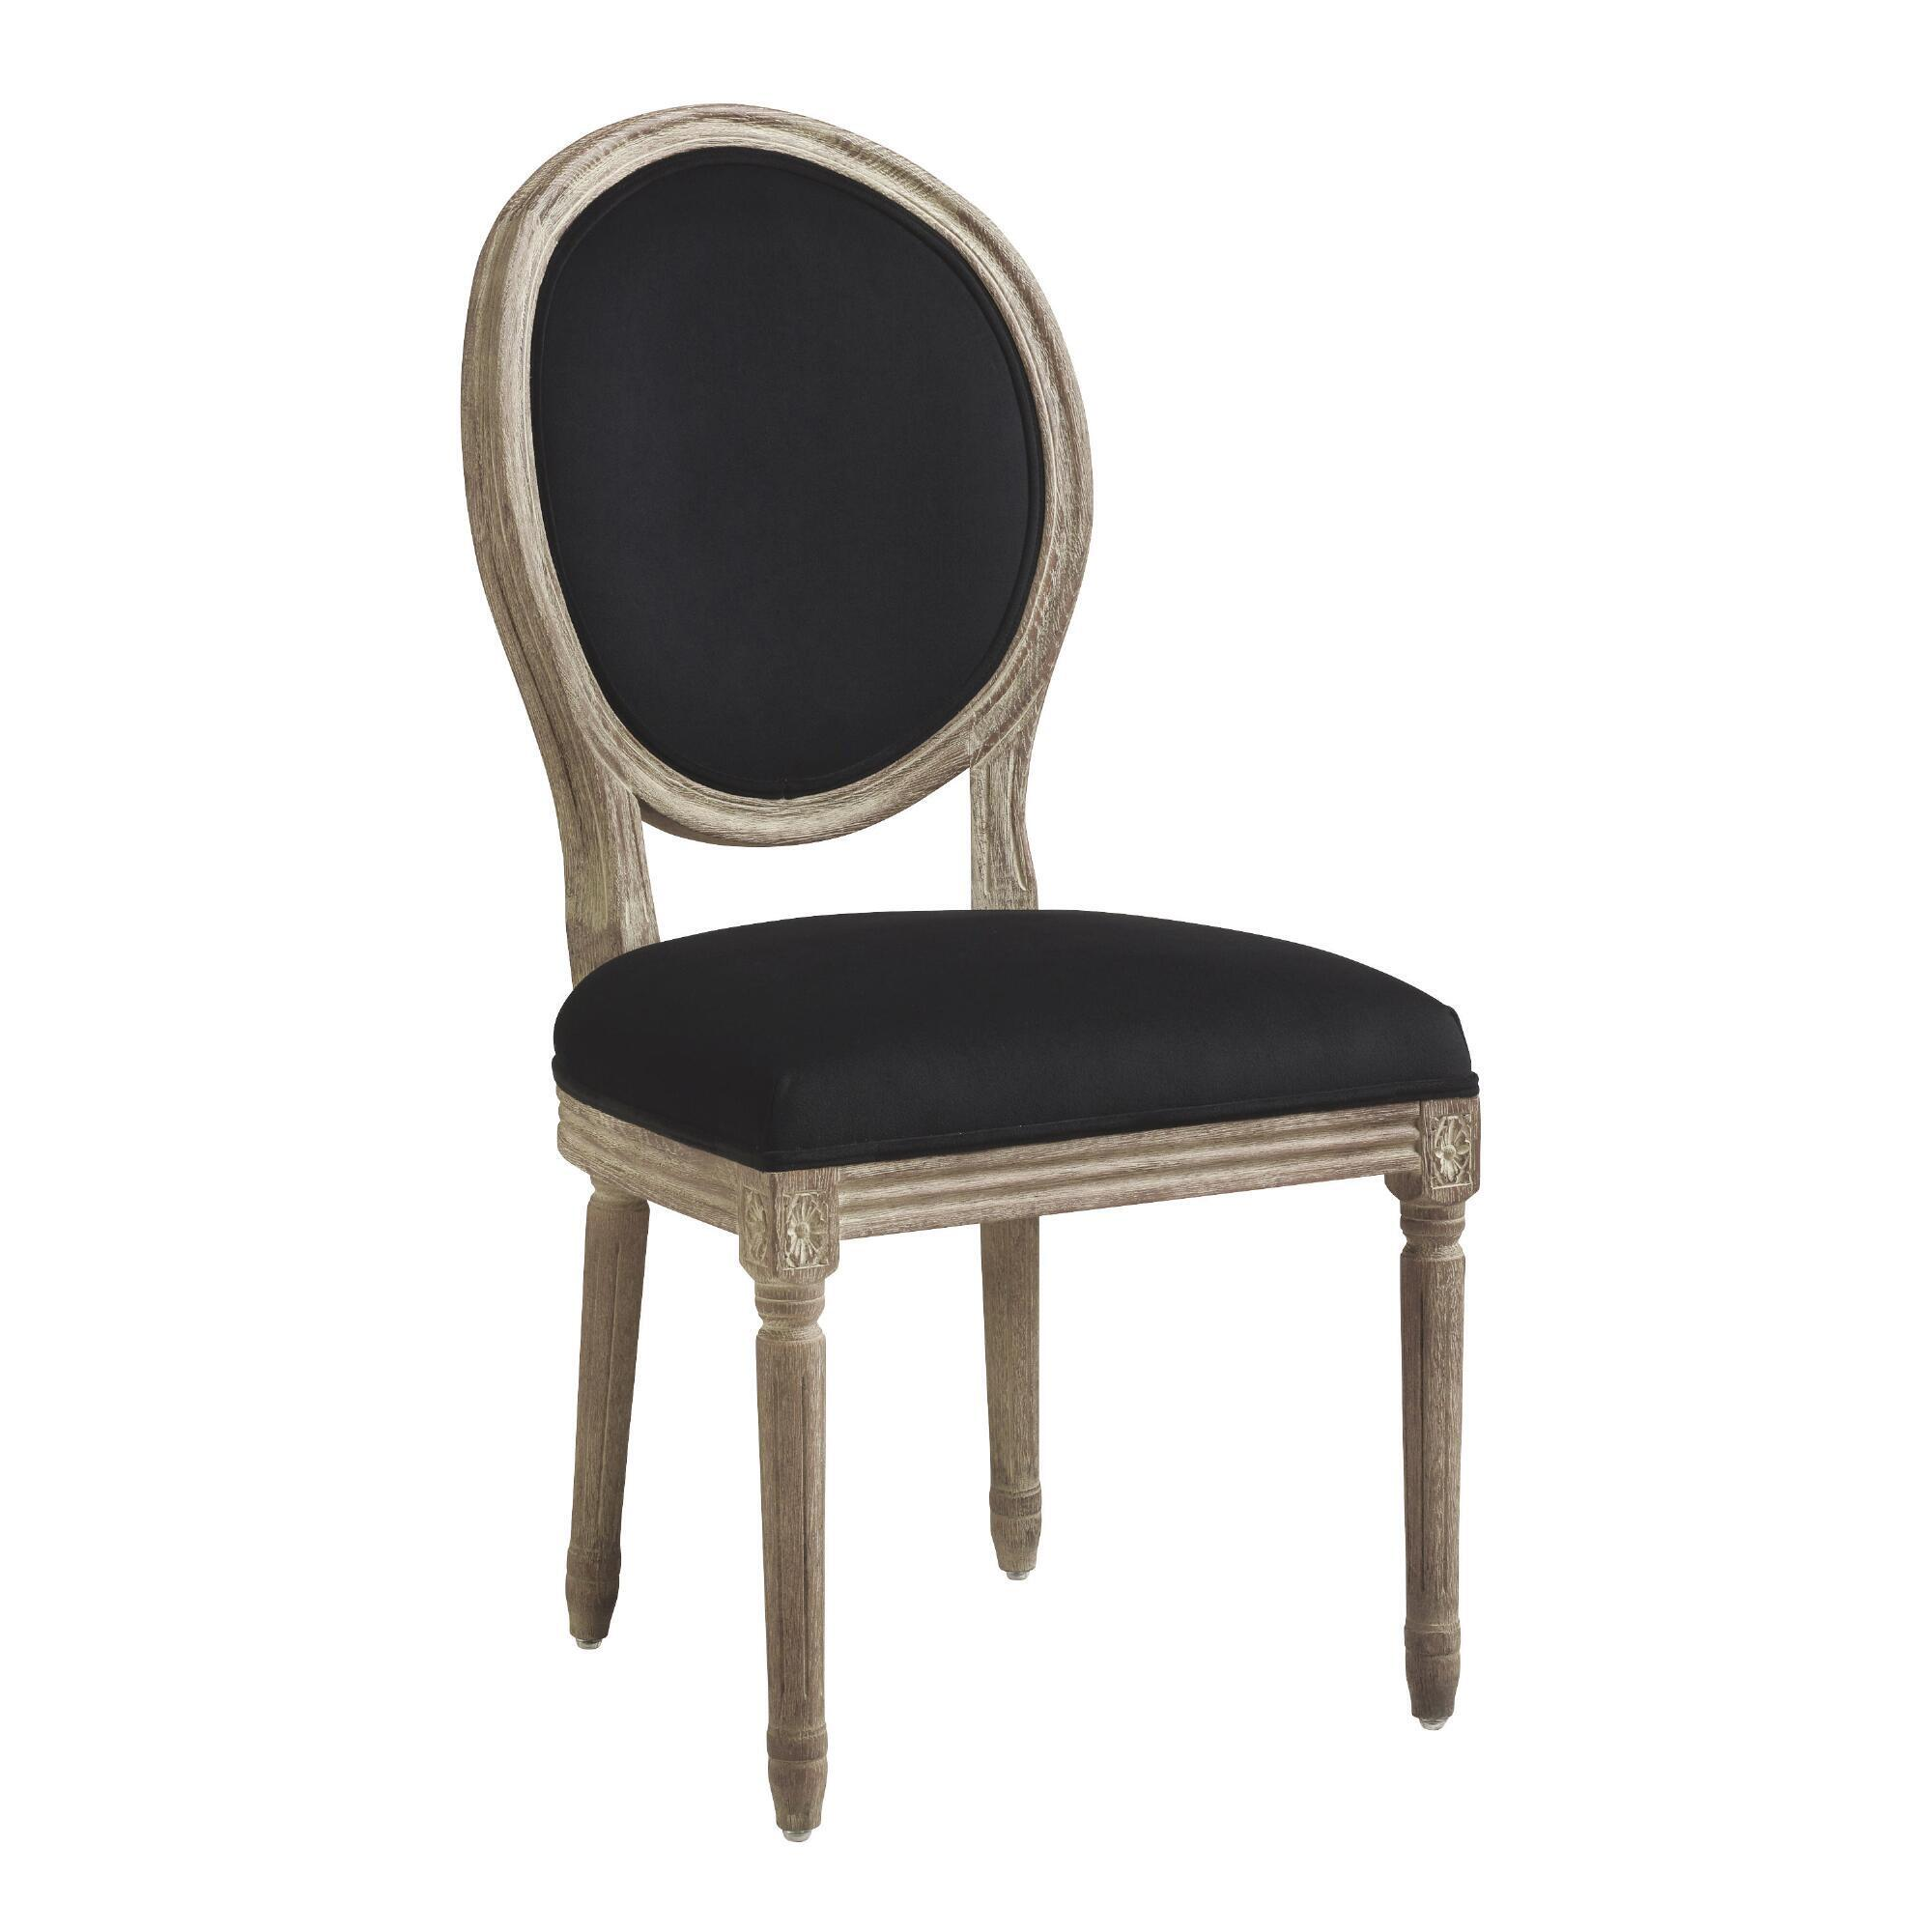 French Country Upholstered Tub Dining Room Chairs